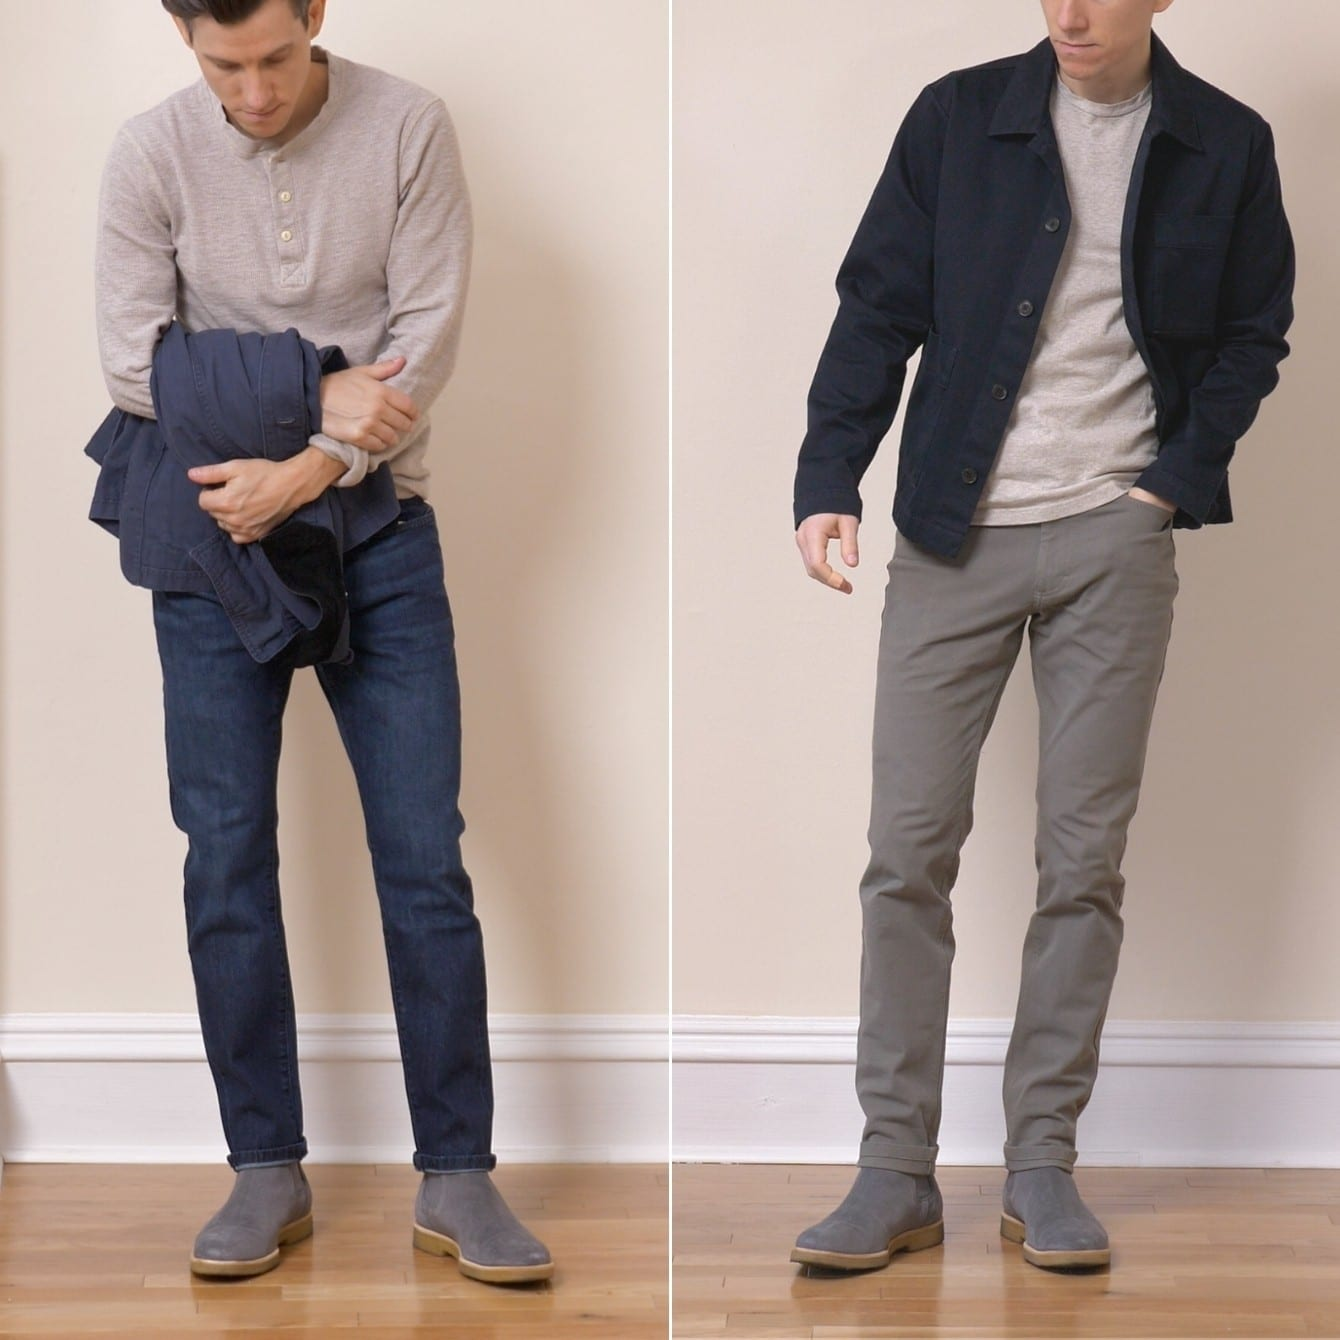 Oliver Cabell Chelsea boots outfits